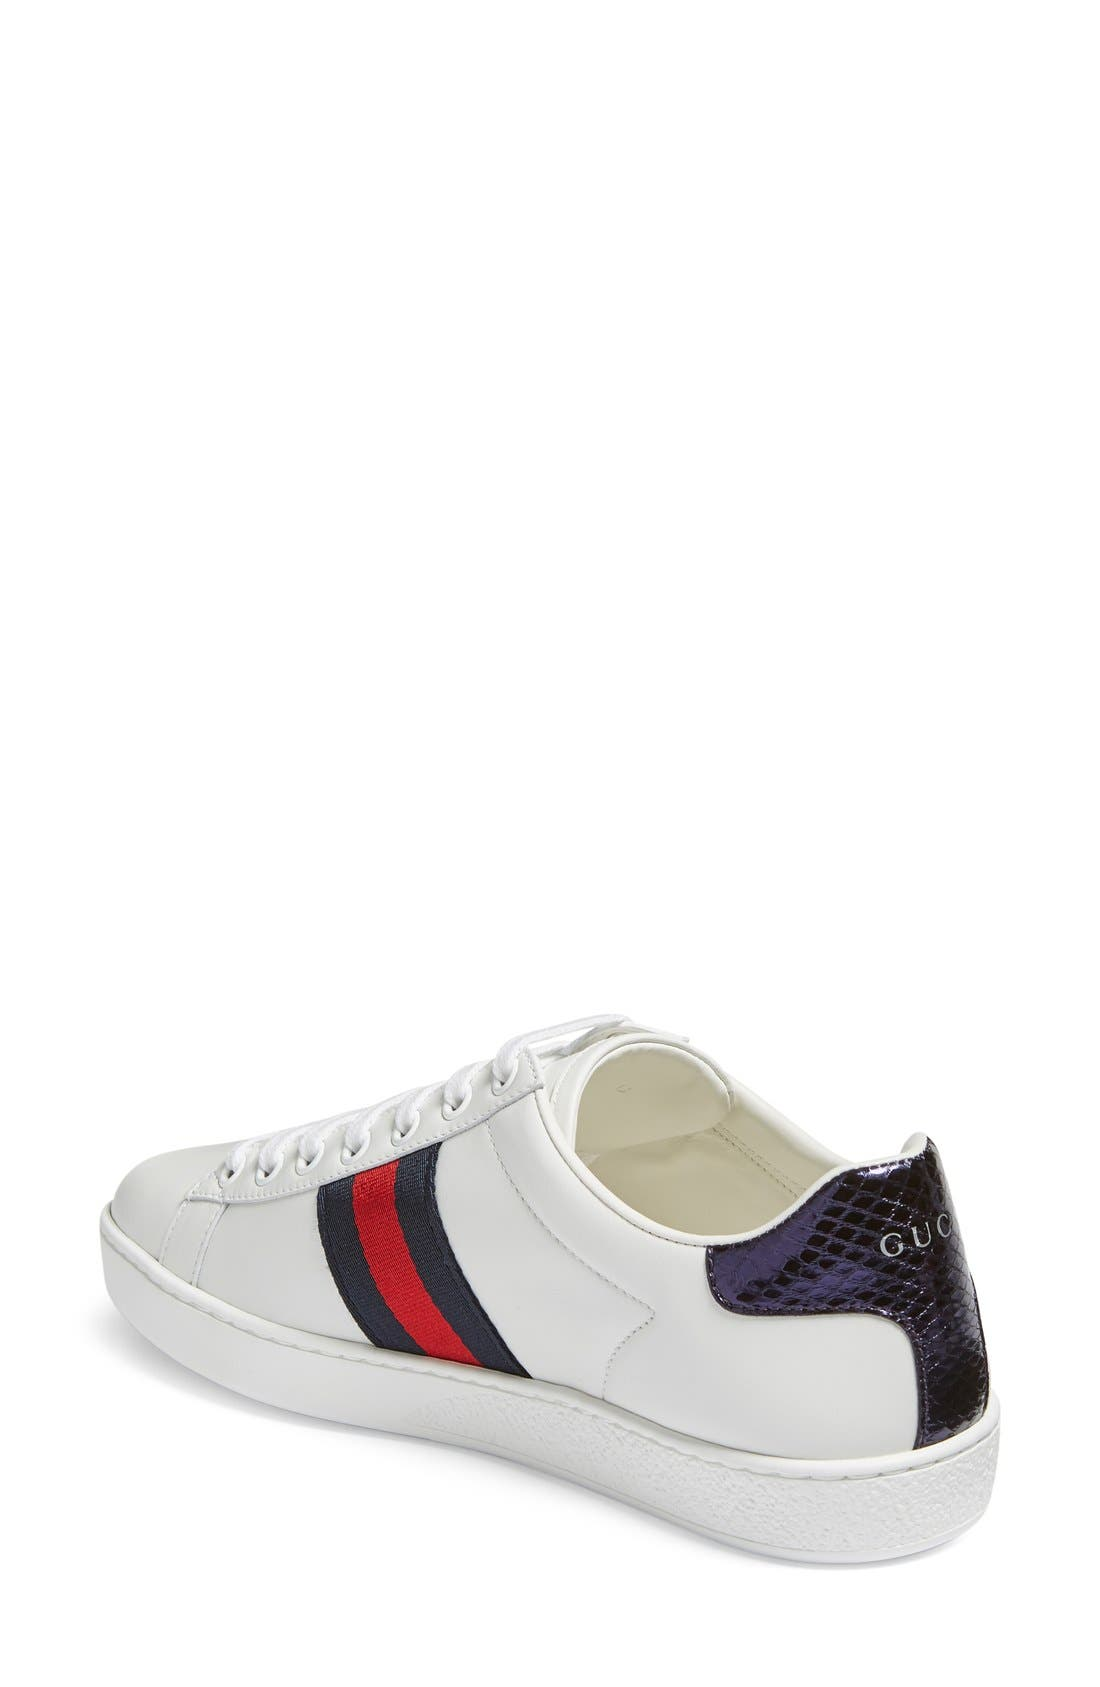 New Age Snake Embellished Sneaker,                             Alternate thumbnail 2, color,                             White Multi